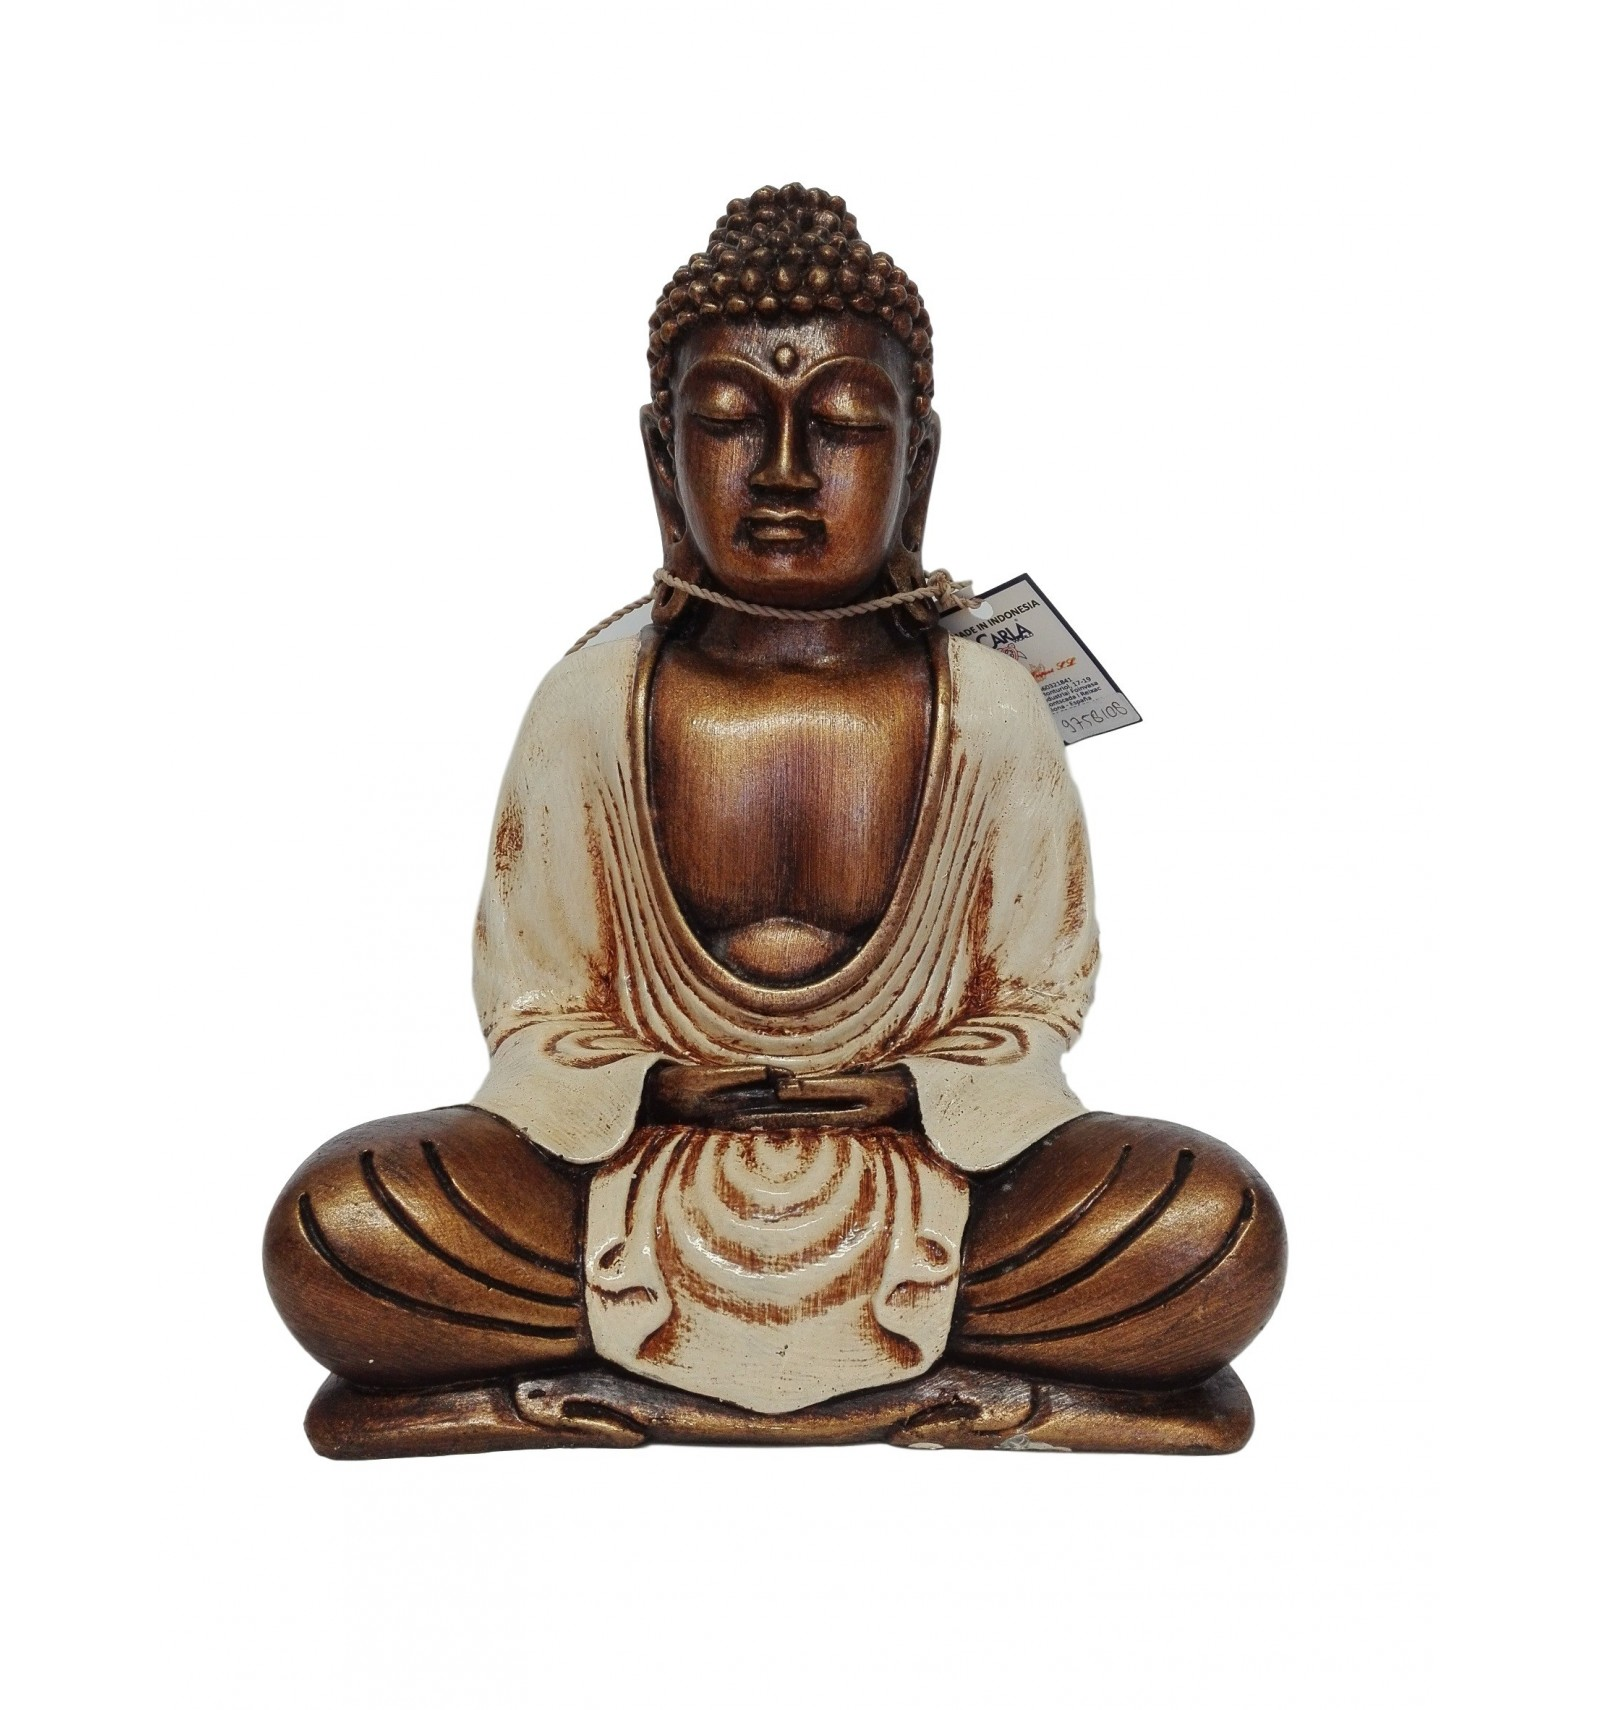 statue bouddha tha landais 22 cm cru par cher 44 10 d coration accueil. Black Bedroom Furniture Sets. Home Design Ideas